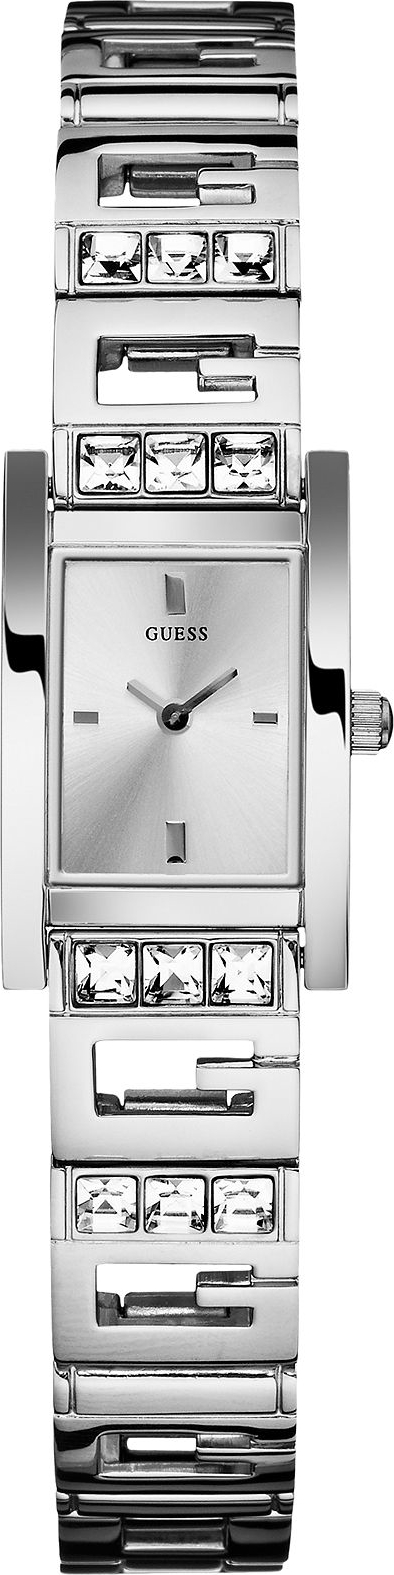 Đồng hồ Guess - Luxury Shopping